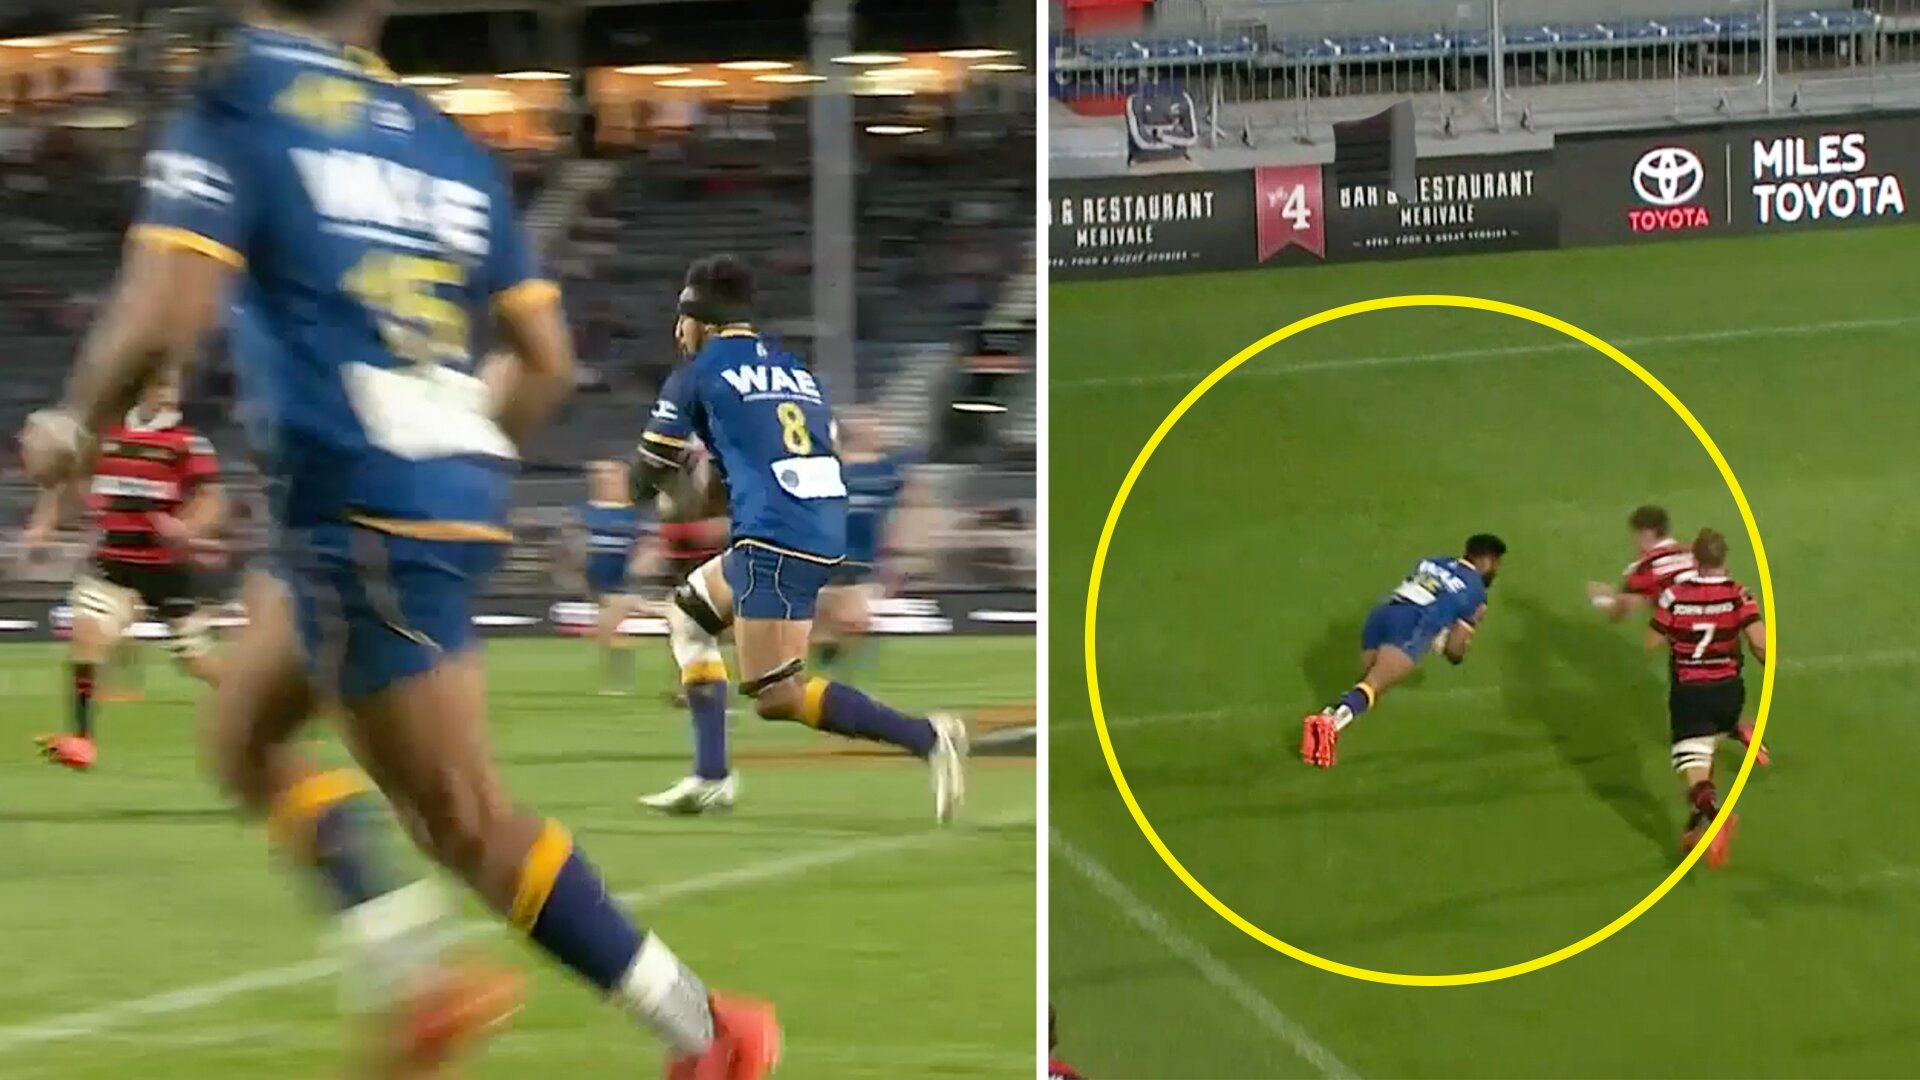 Otago run in one of the tries of the season in stupendous show of skill in Mitre 10 Cup